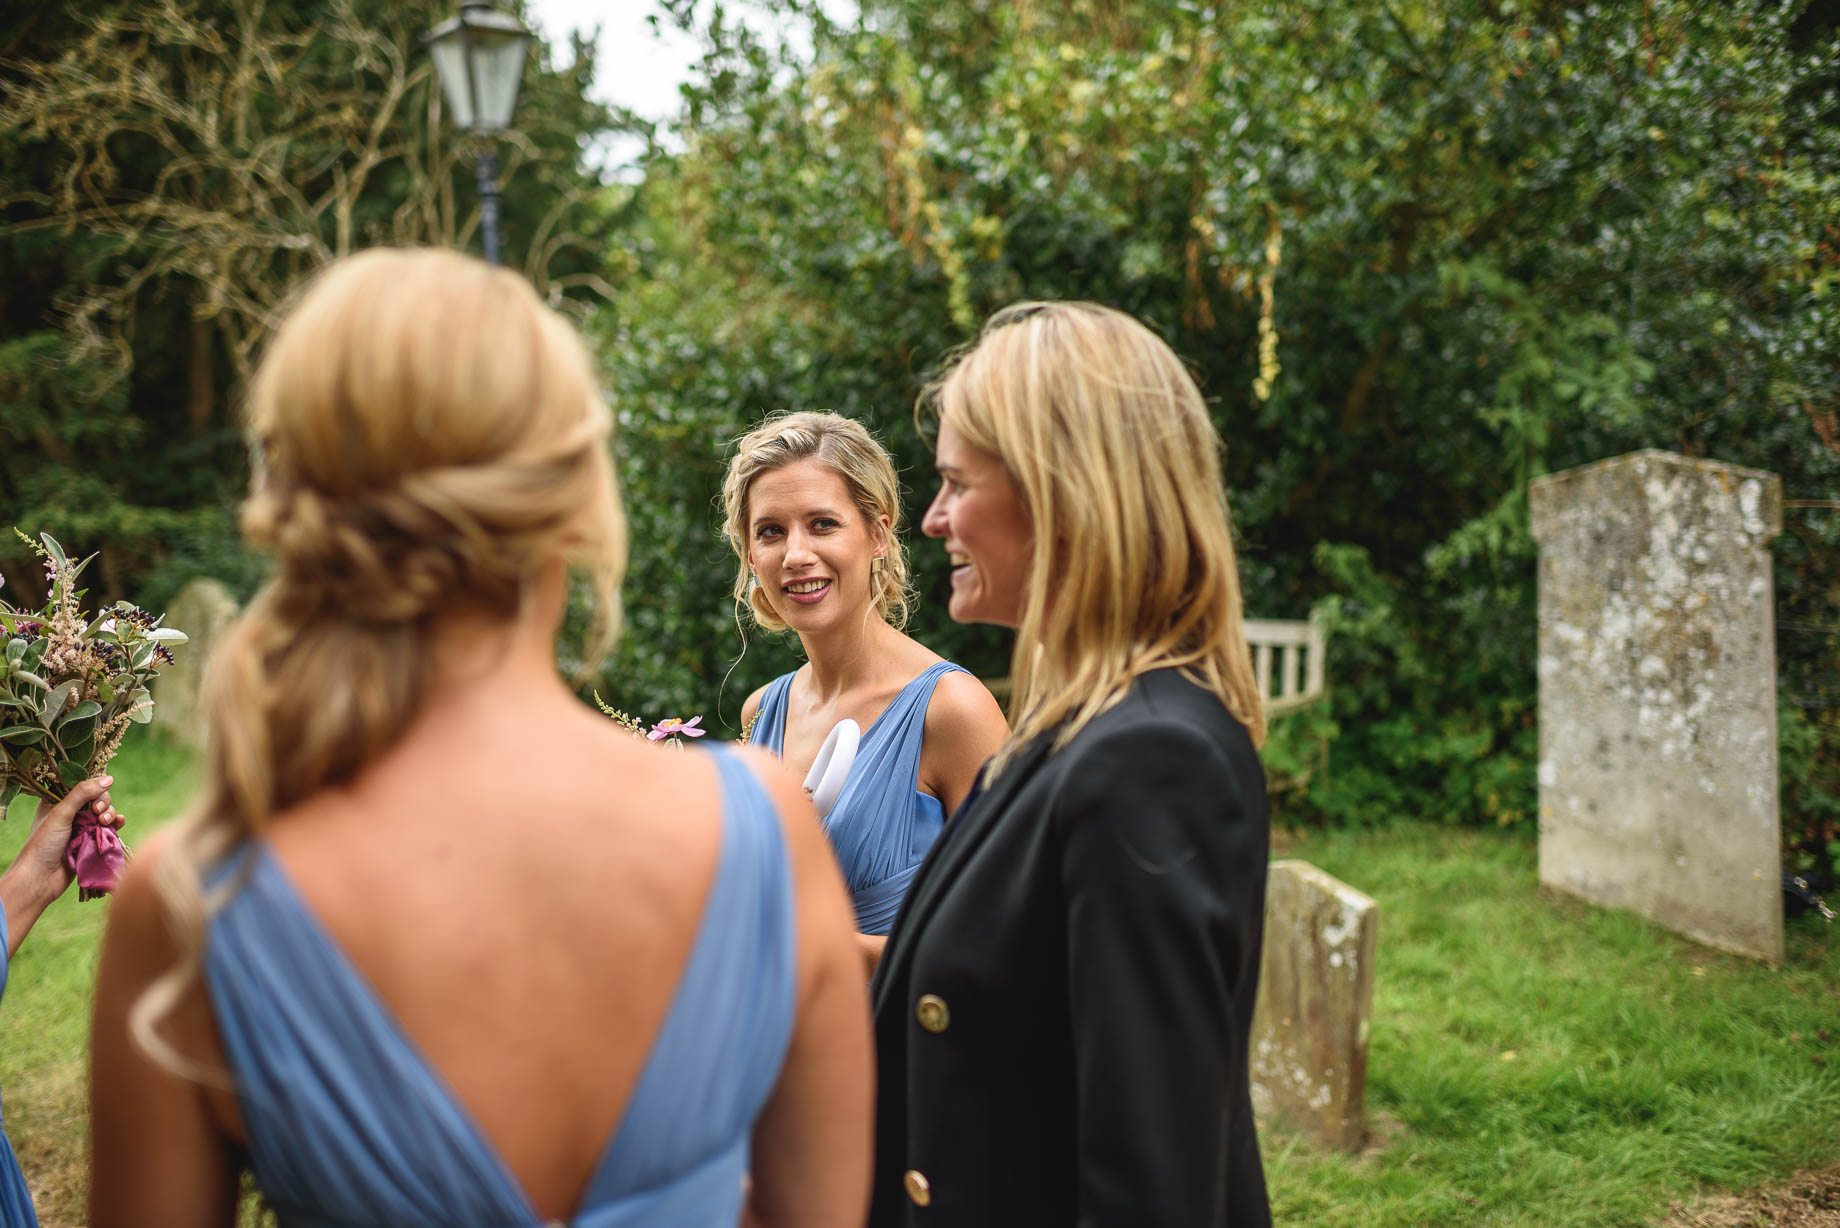 surrey-wedding-photography-guy-collier-photography-claire-and-tom-59-of-227